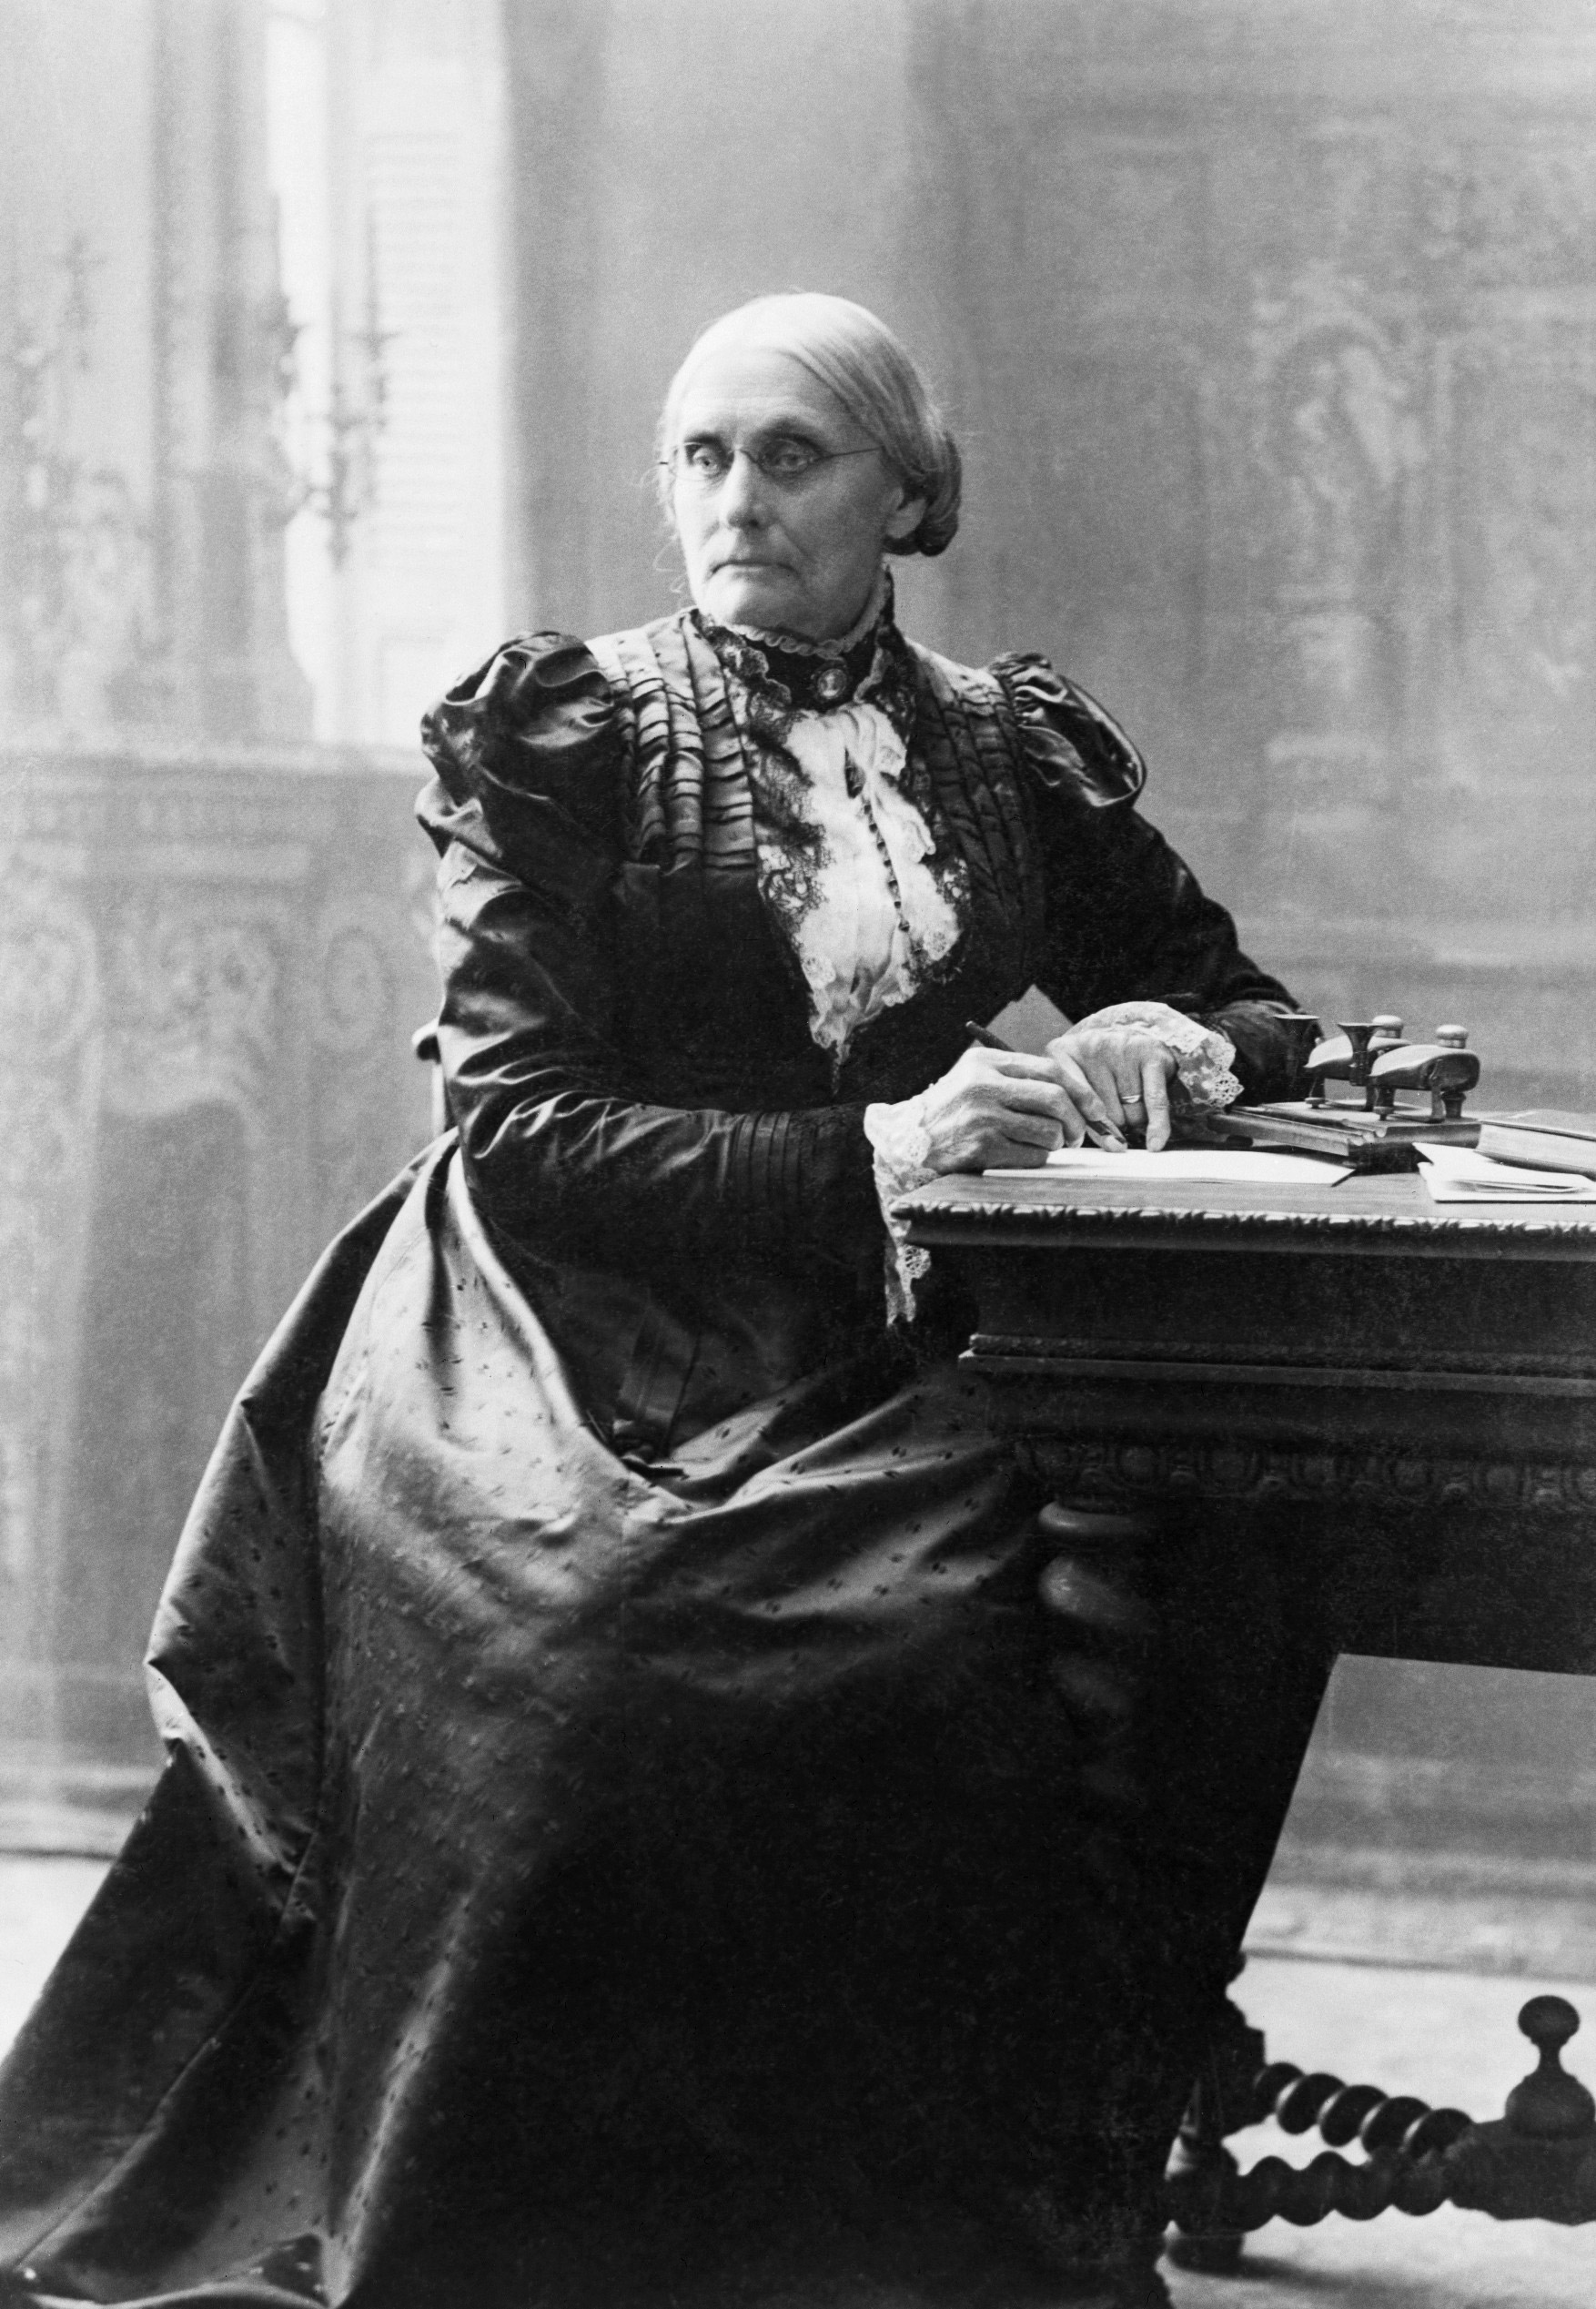 Susan B. Anthony (1820-1906), pictured in 1898.Anthony, one of America's most famous suffrage supporters, spent the bulk of her life traveling the nation advocating for women's rights. She was one of the founders of the National Woman Suffrage Association.